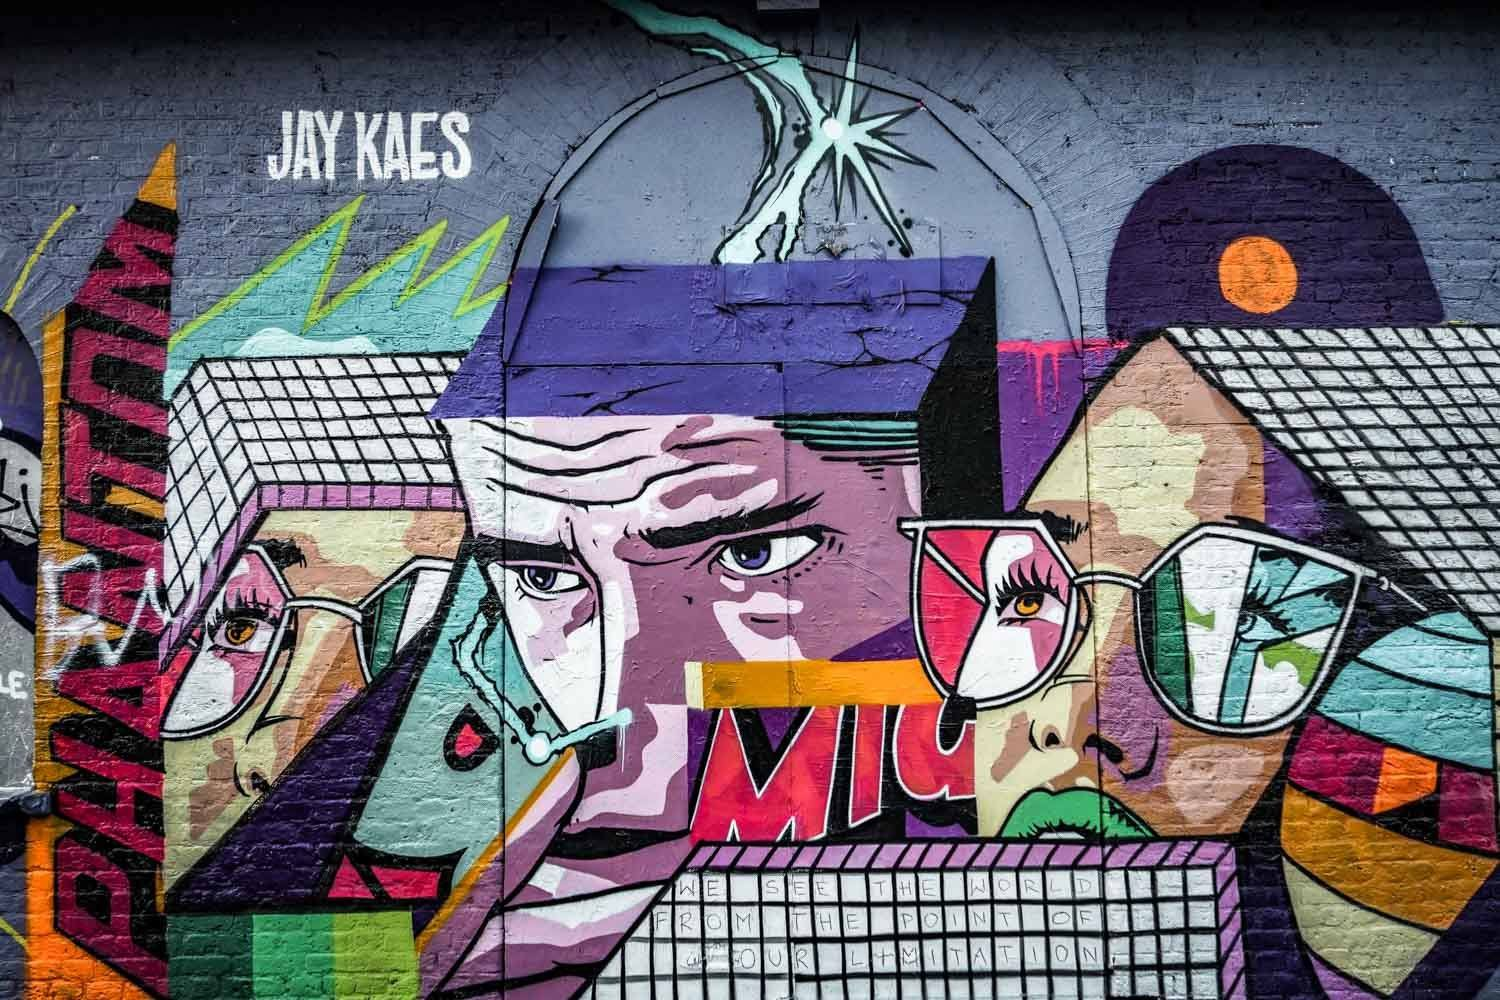 Graffiti in Pedley Street London - Jae Kaes